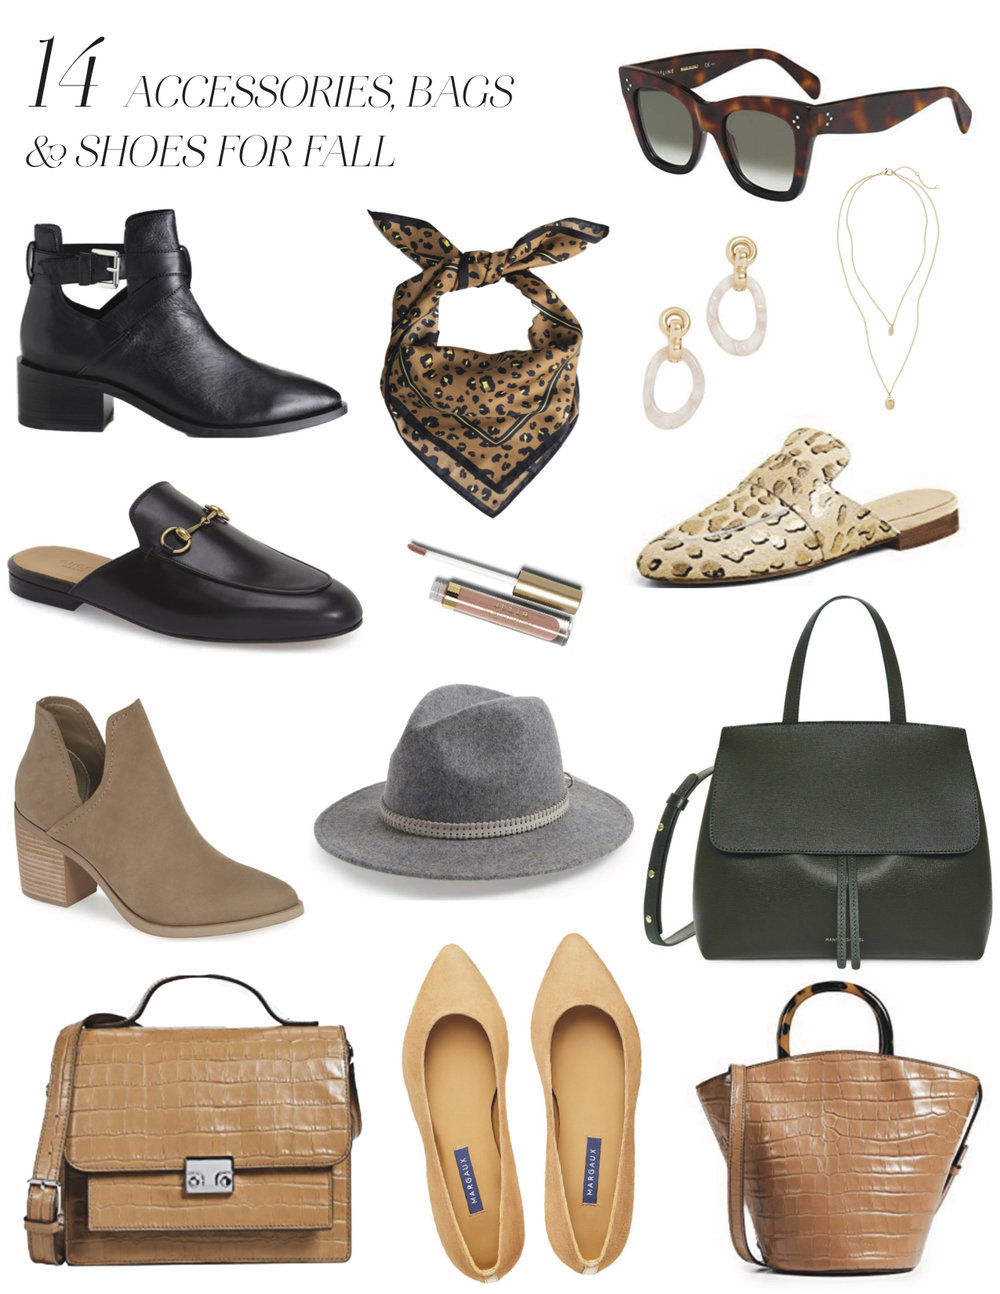 12 accessories and shoes for fall.jpg